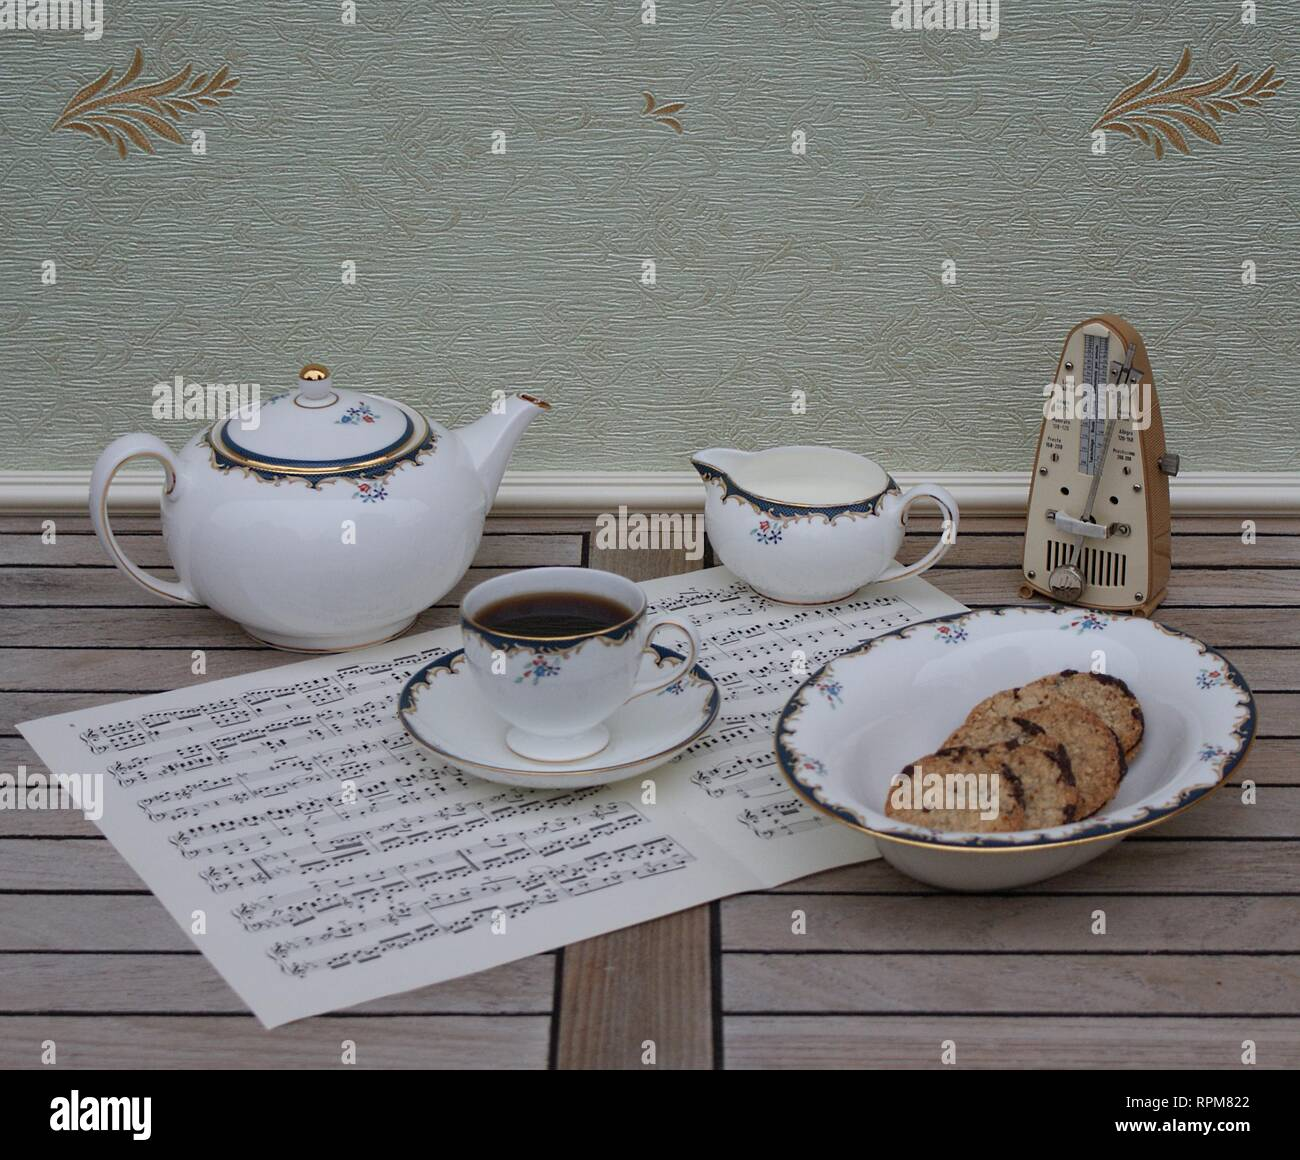 English teacup with saucer, teapot, cream jug and a cake bowl, fine bone china porcelain, and a metronome for music on a sheet of music - Stock Image